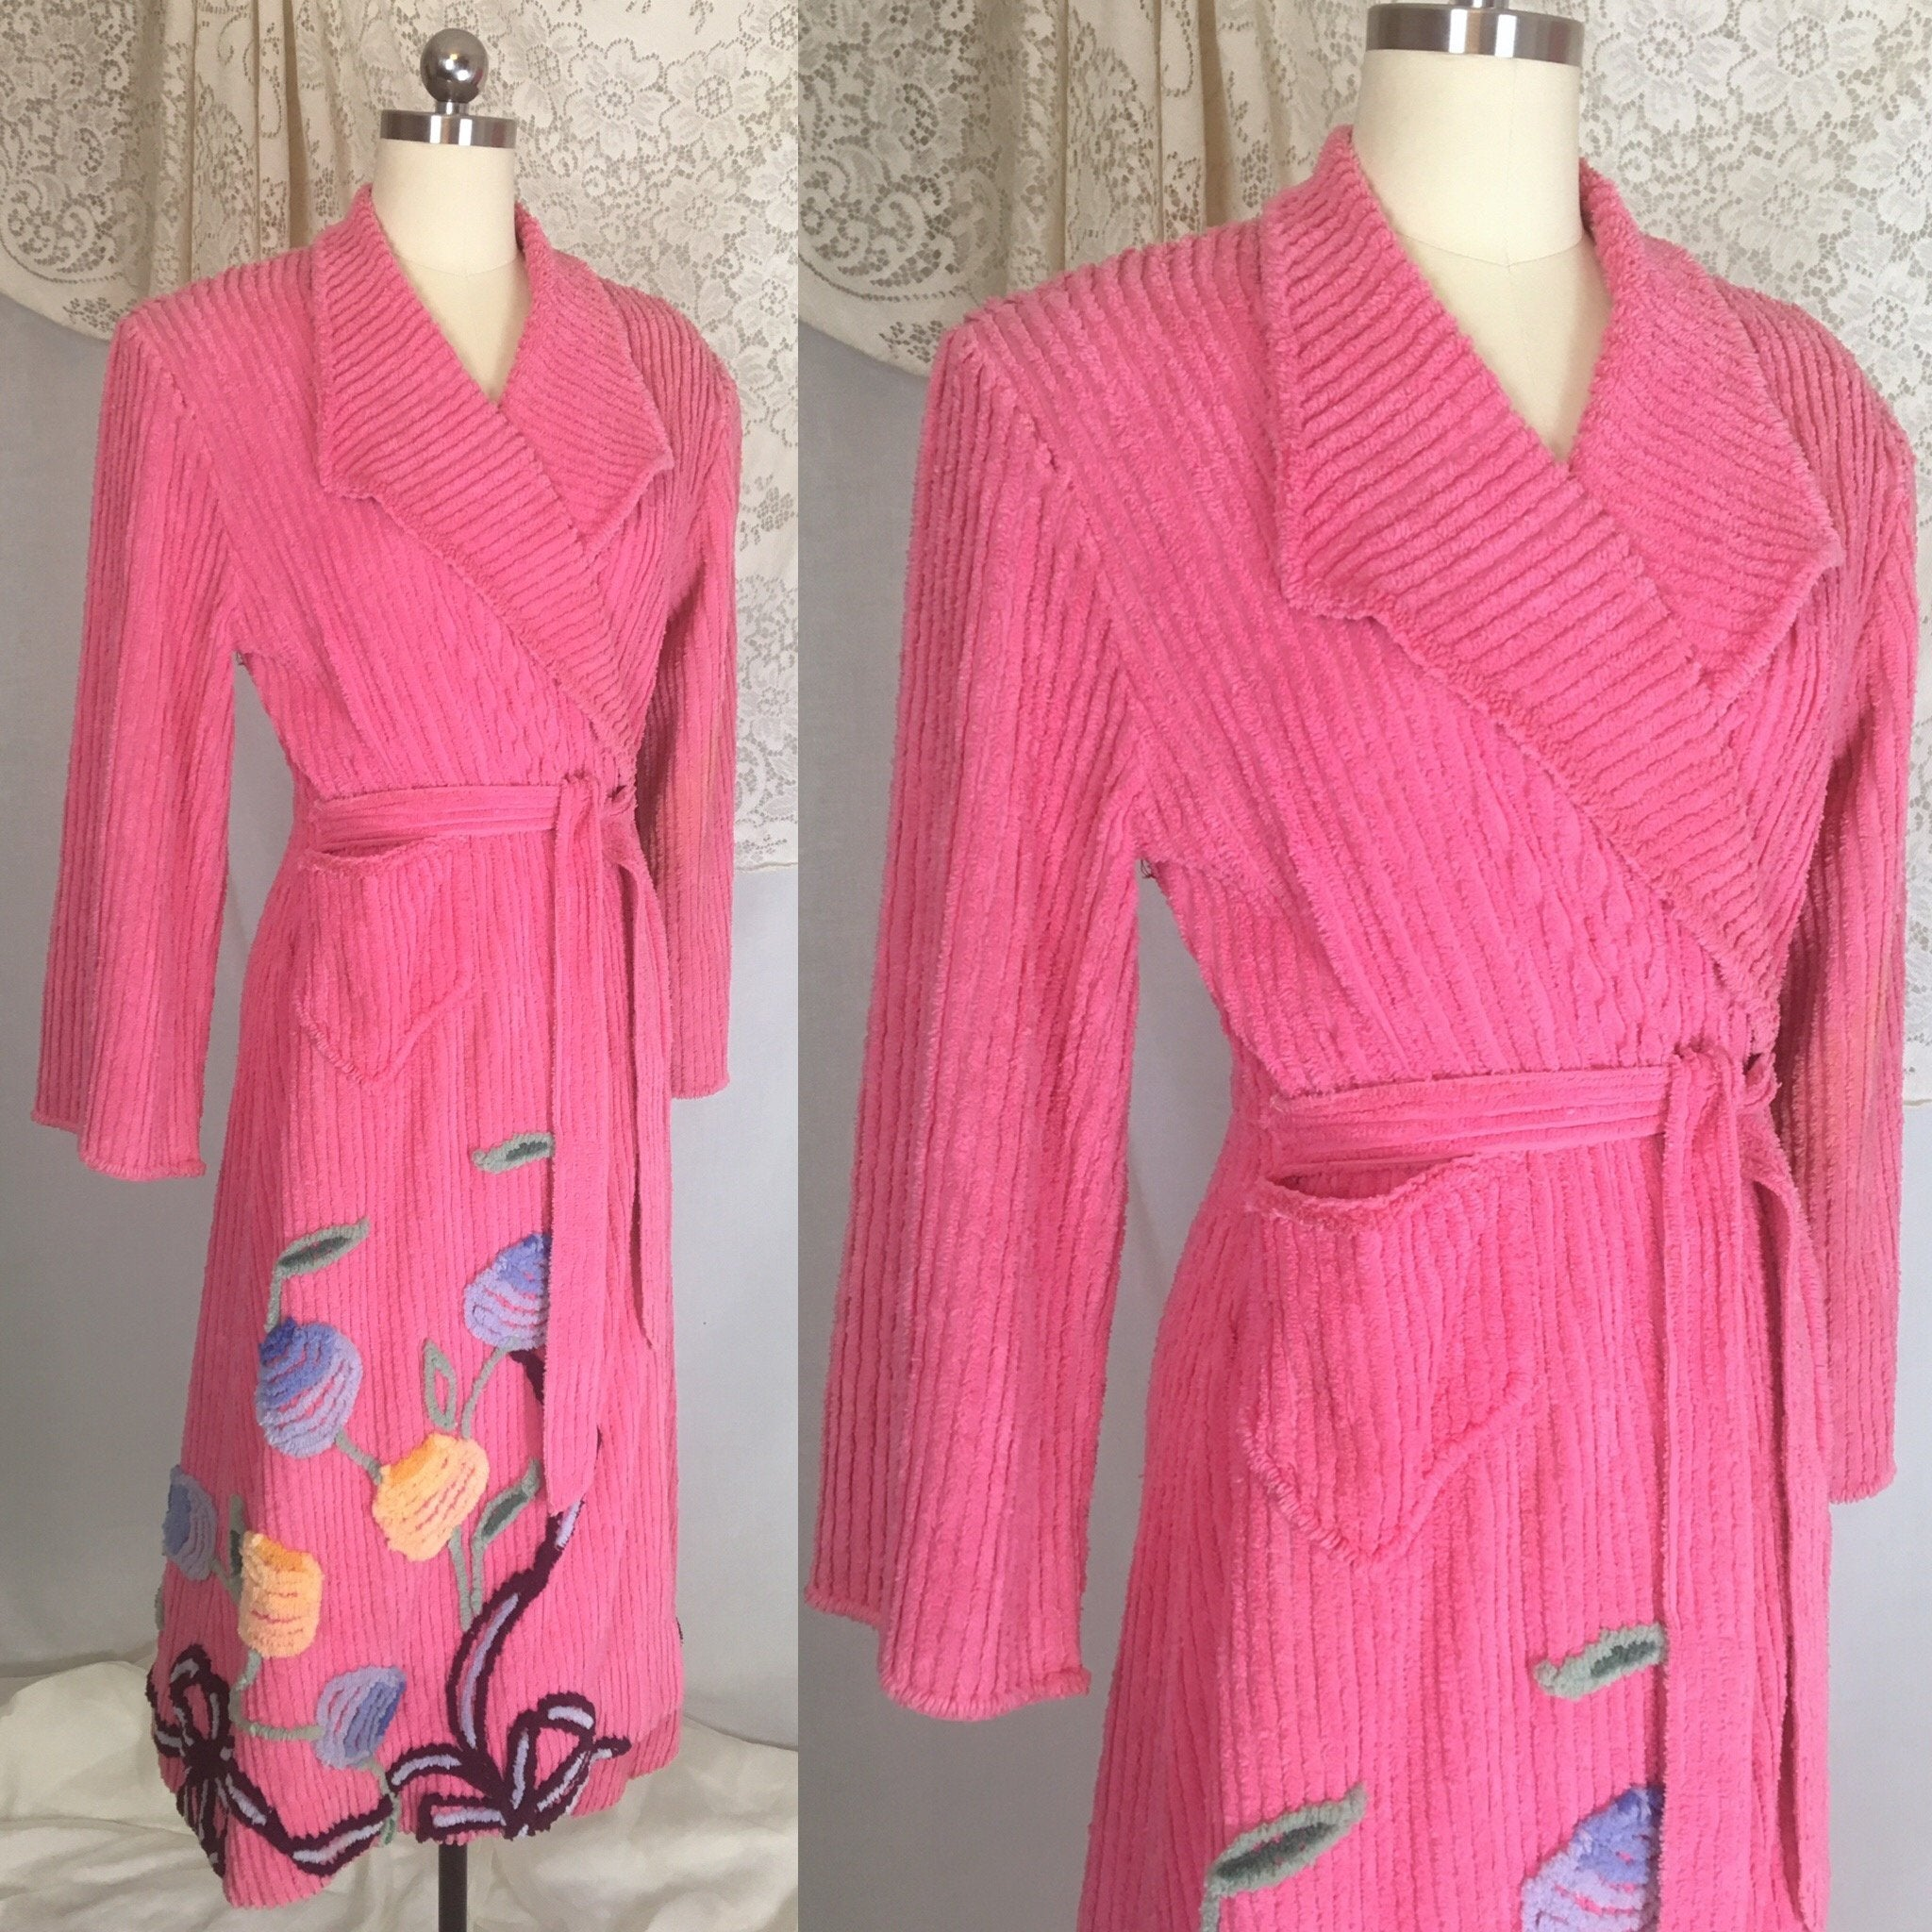 Vintage 1950's Robe | Hot Pink Chenille with Flowers & Bows | Size M, LG - Daggers & Dames